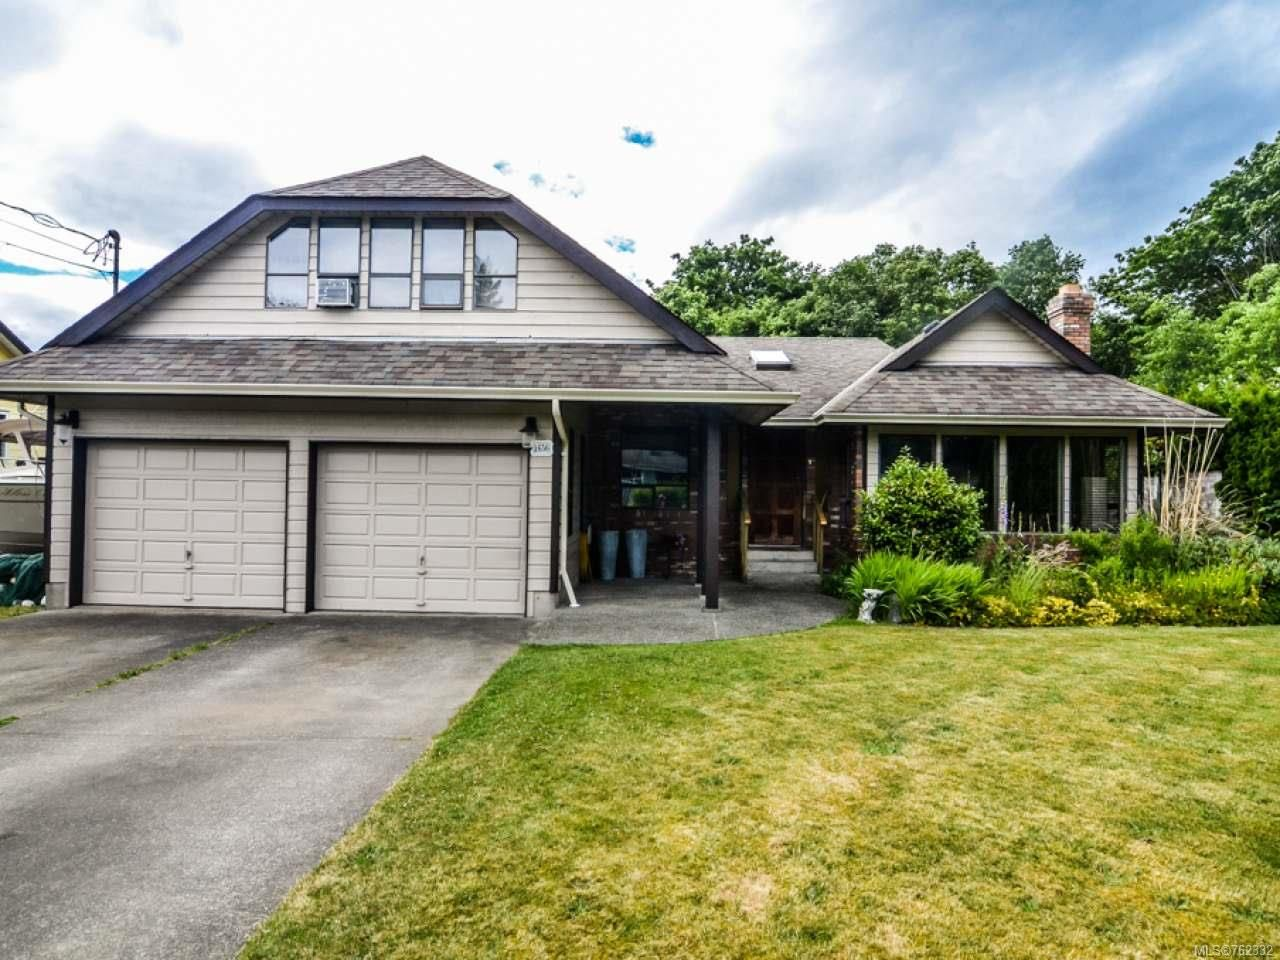 Photo 41: Photos: 1656 Galerno Rd in CAMPBELL RIVER: CR Campbell River Central House for sale (Campbell River)  : MLS®# 762332